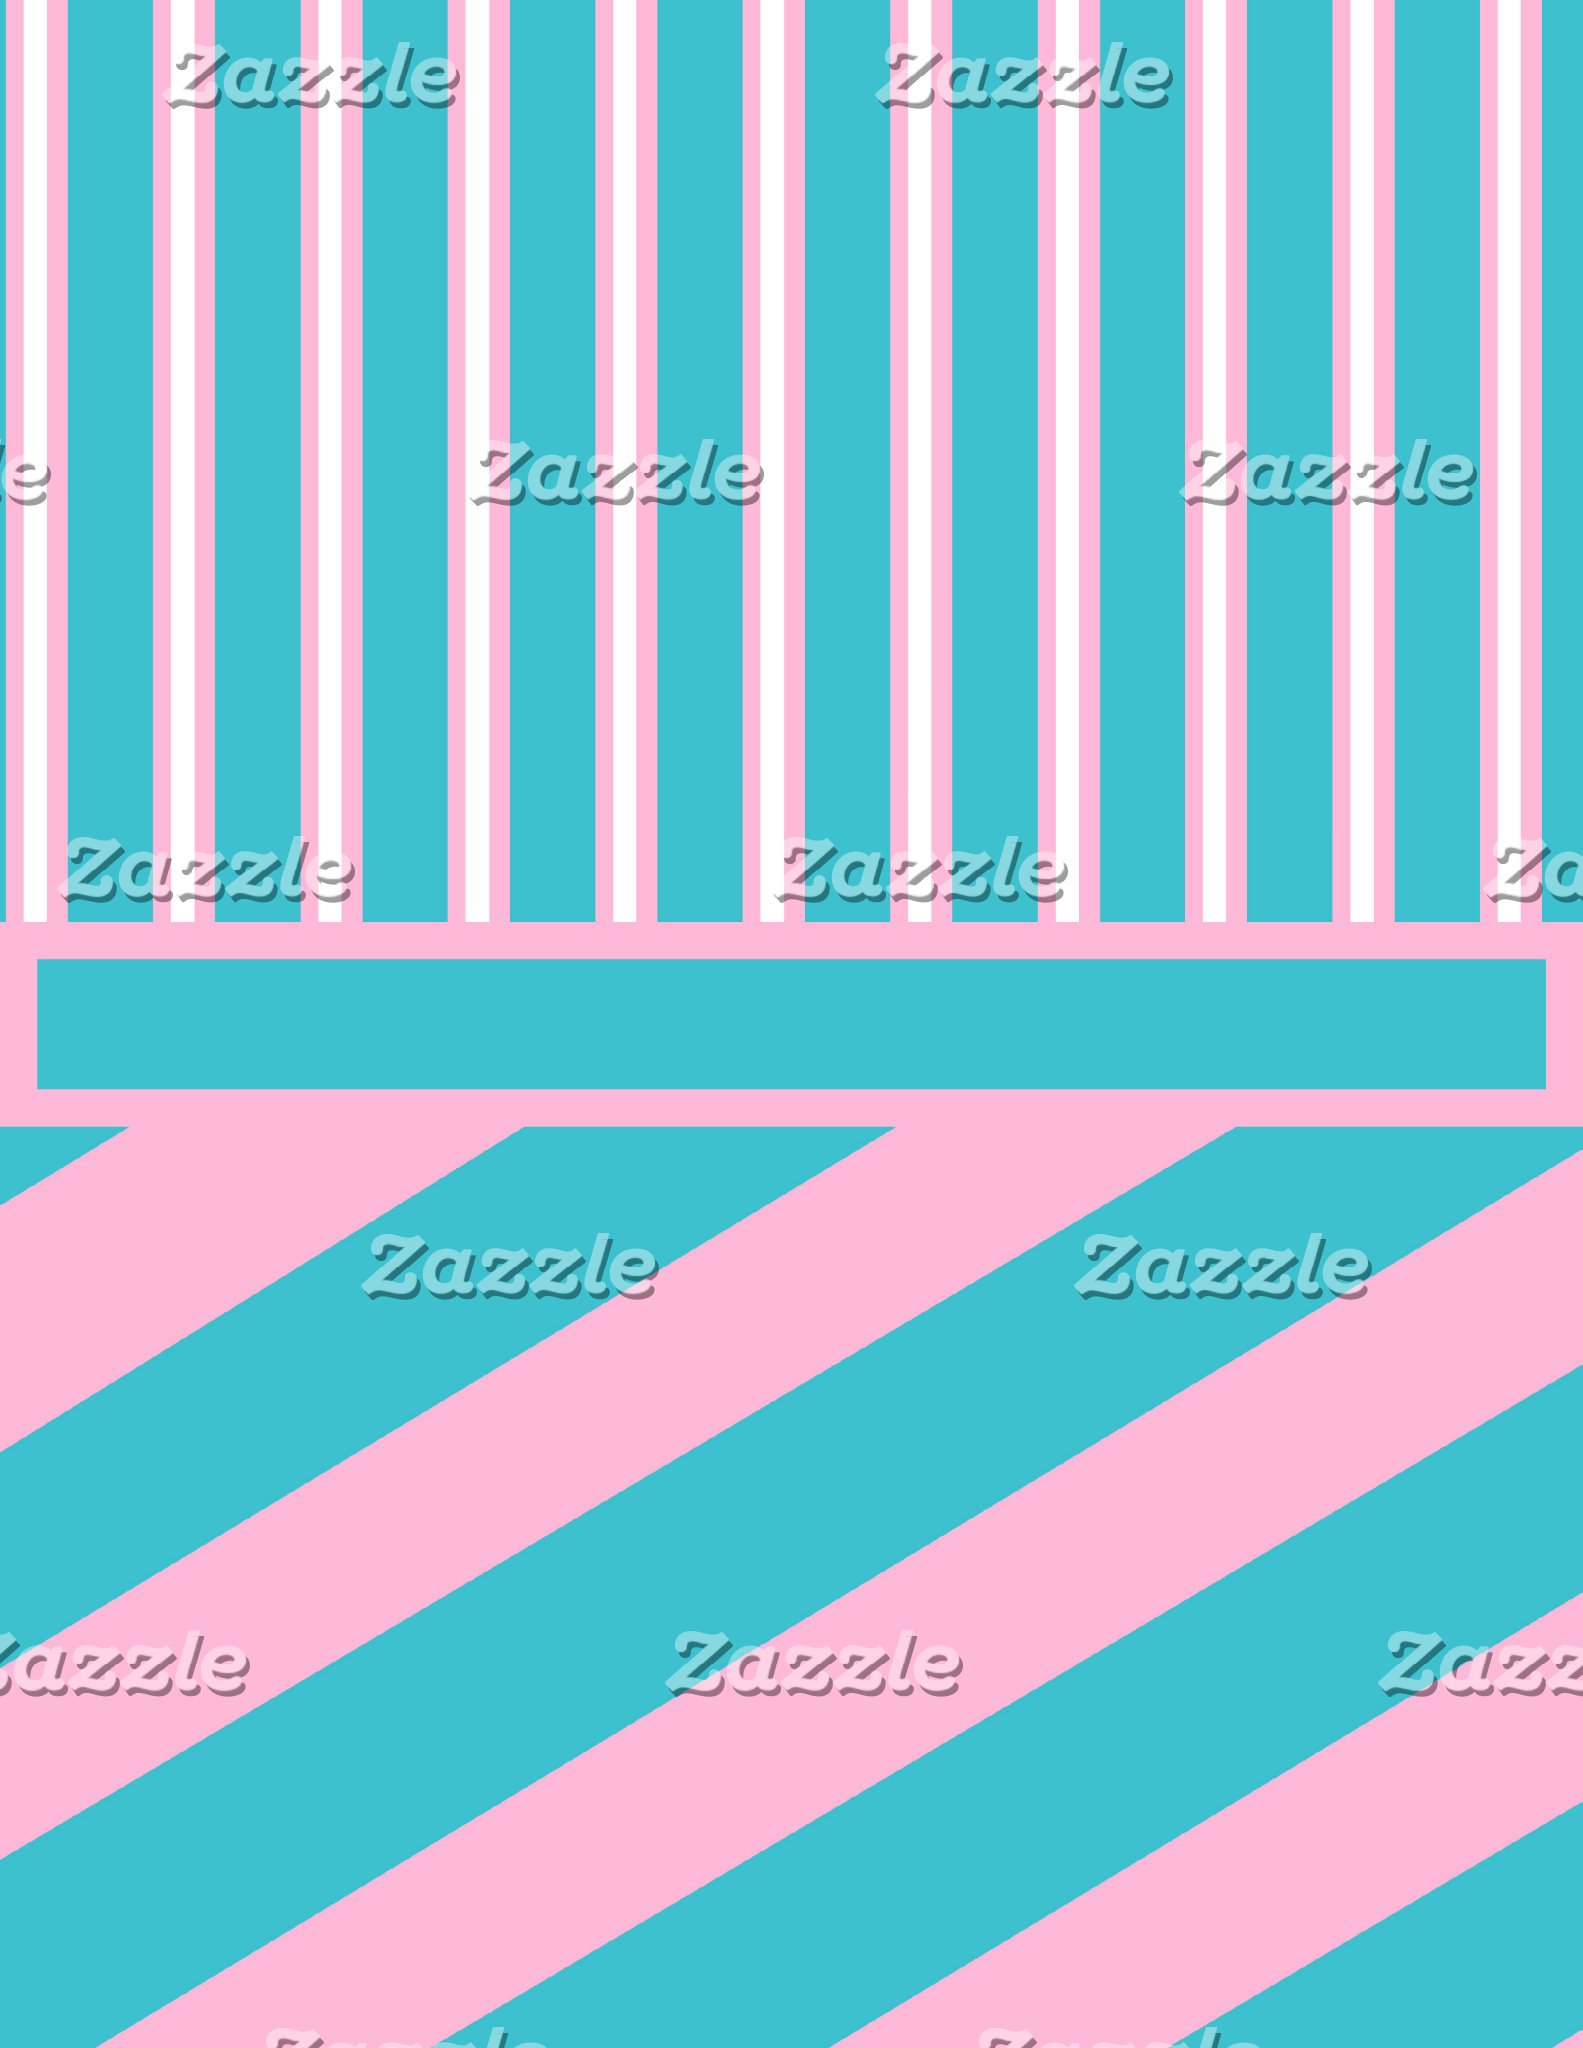 Blue Pink and White Vertical and Diagonal Stripes